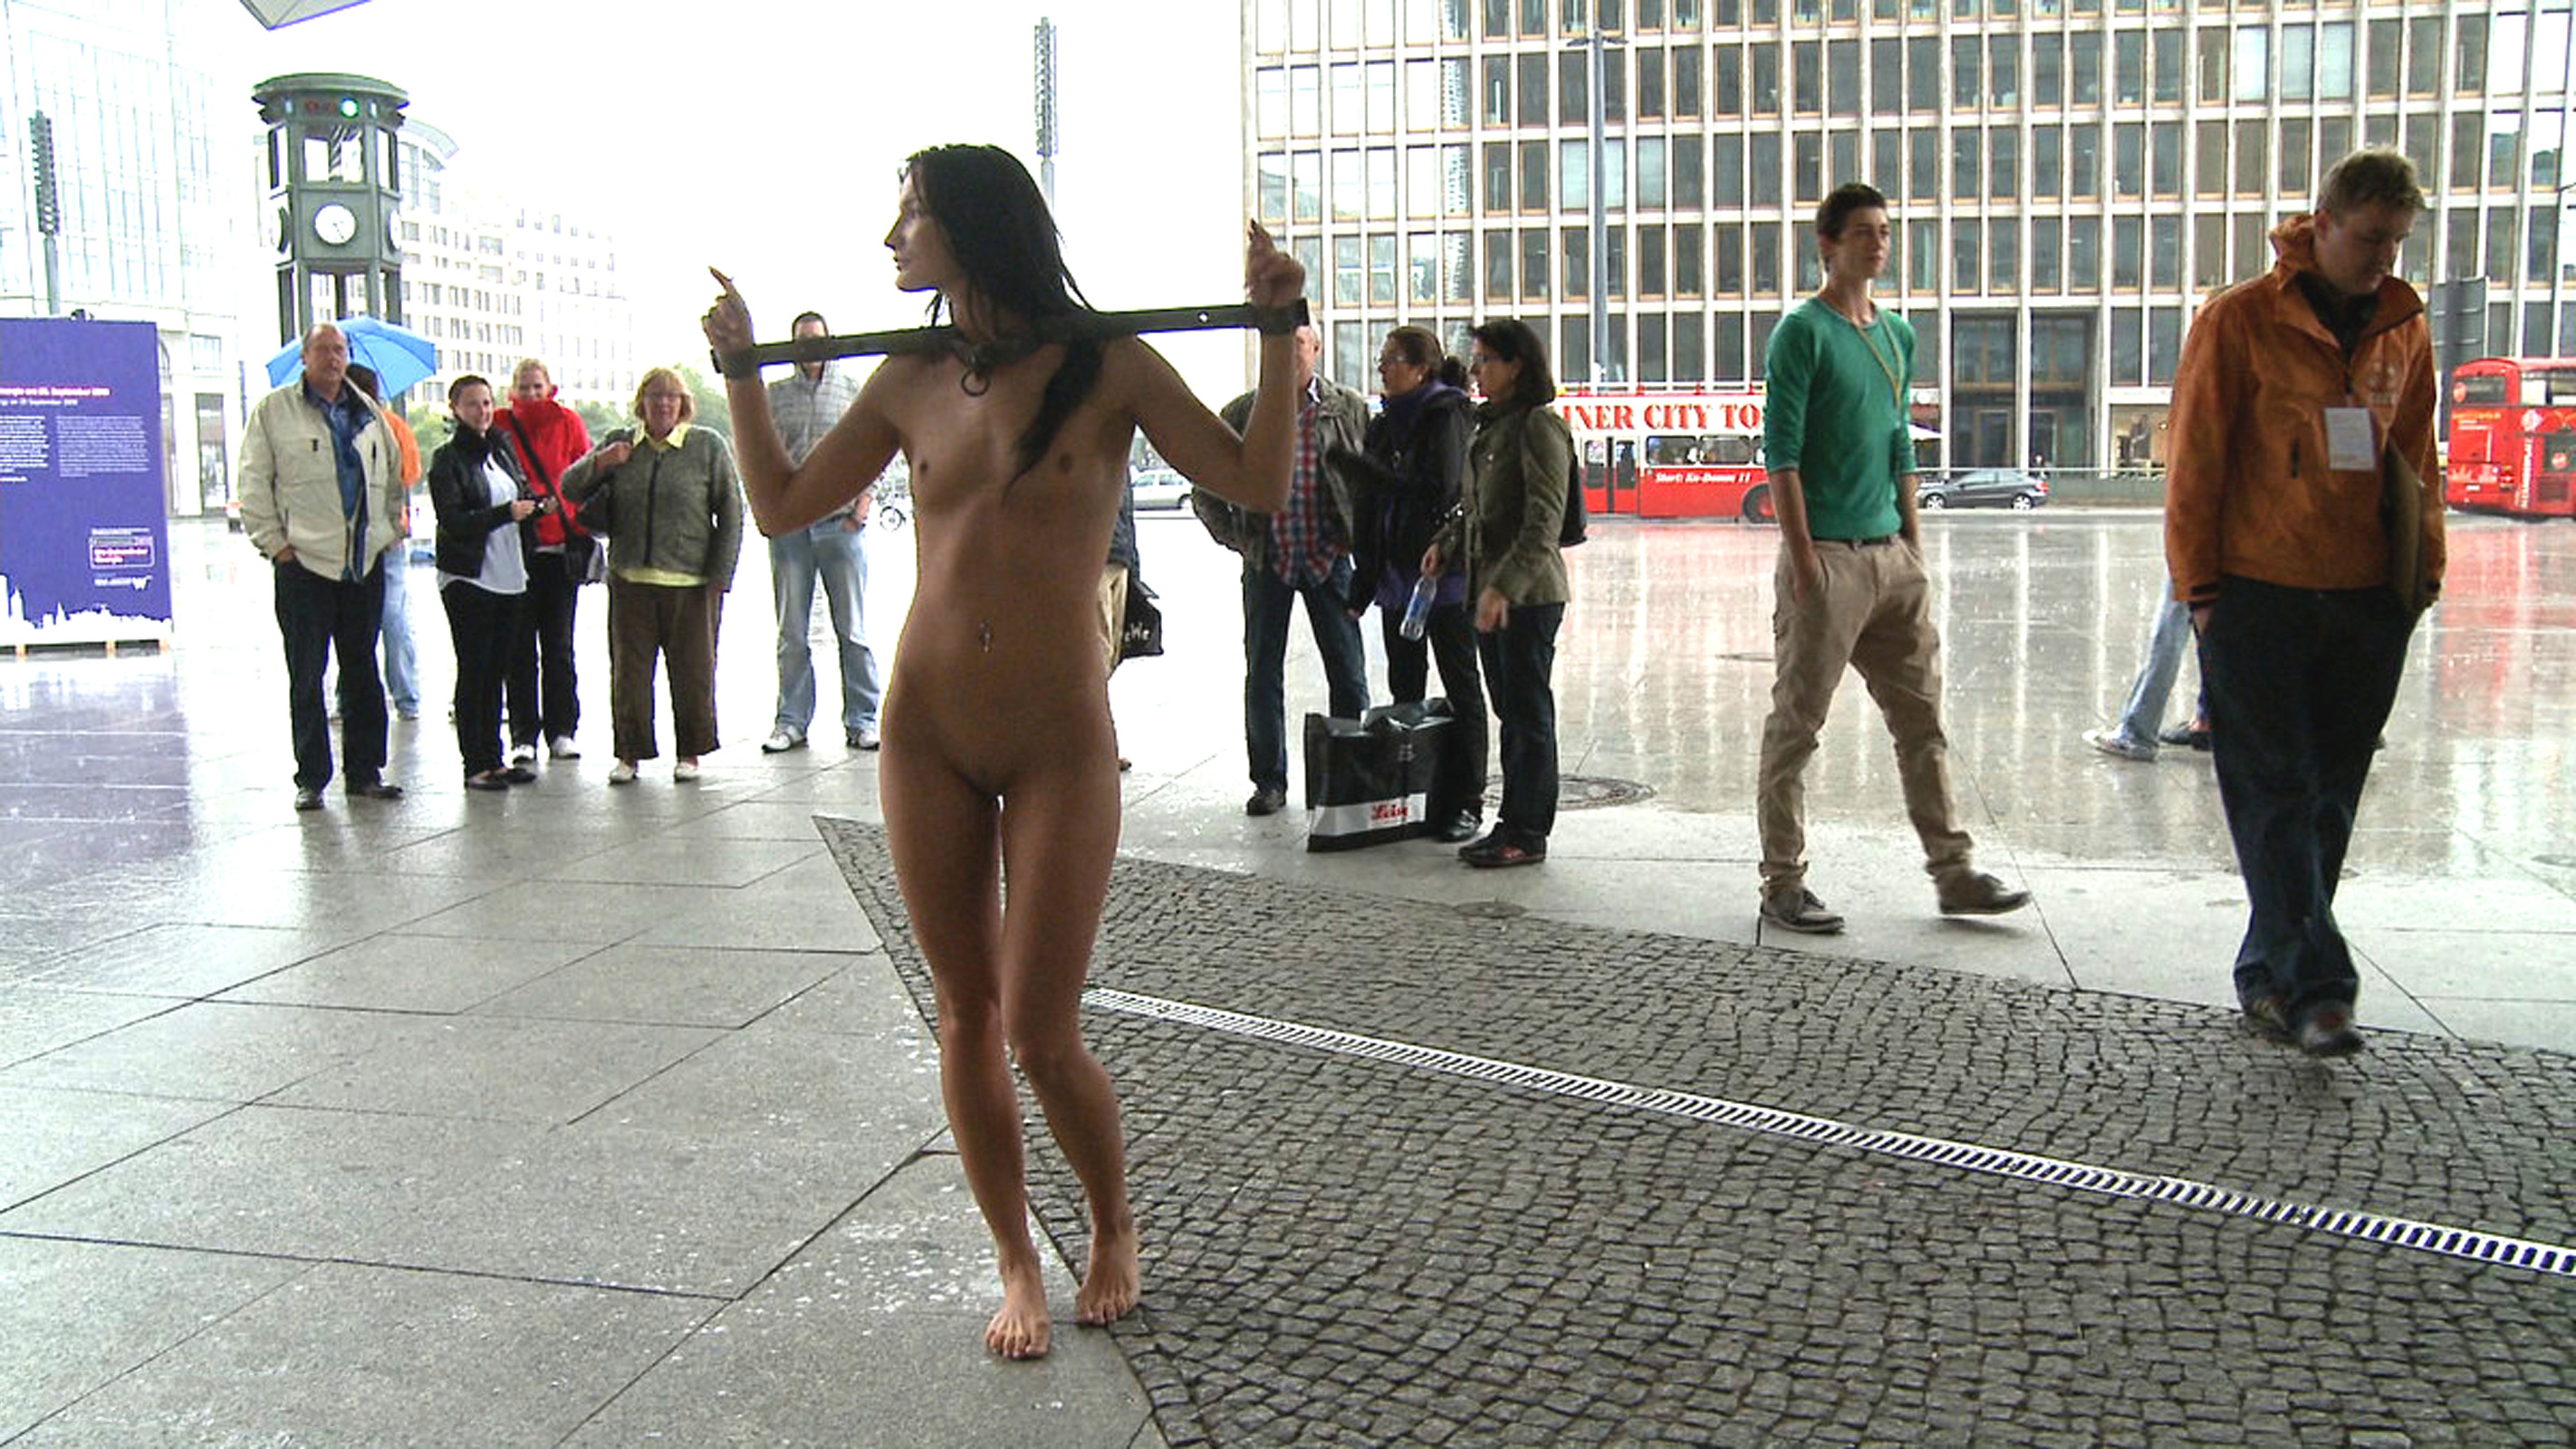 Naked girl bondage public, interracial xxx wrong side of town